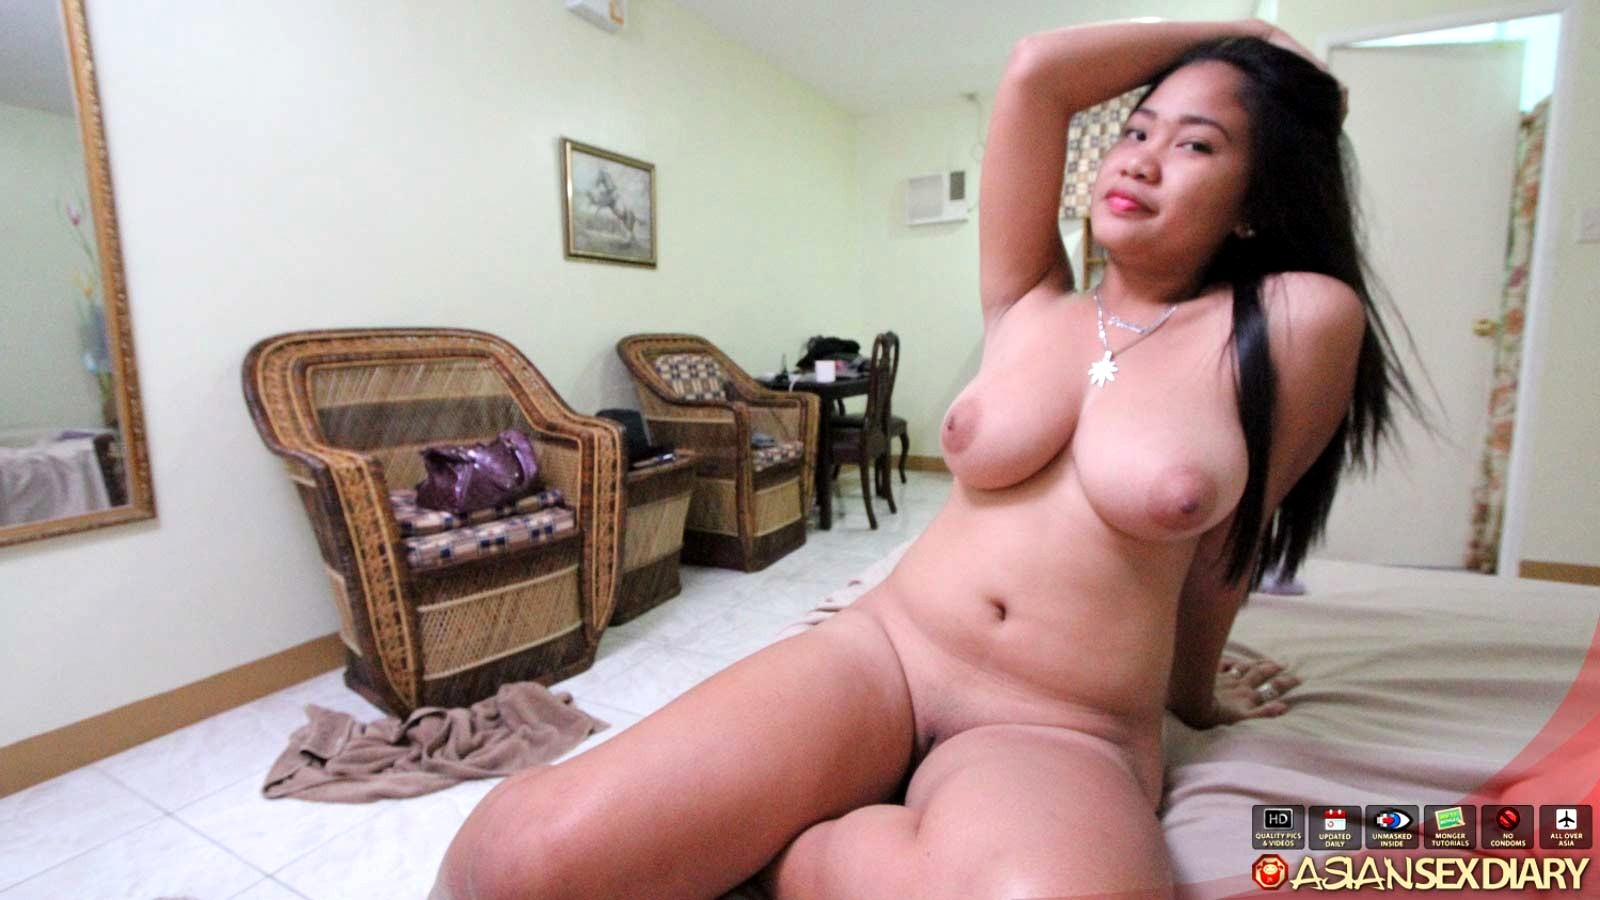 Babe Today Asian Sex Diary Asiansexdiary Model Show Hooker -3723